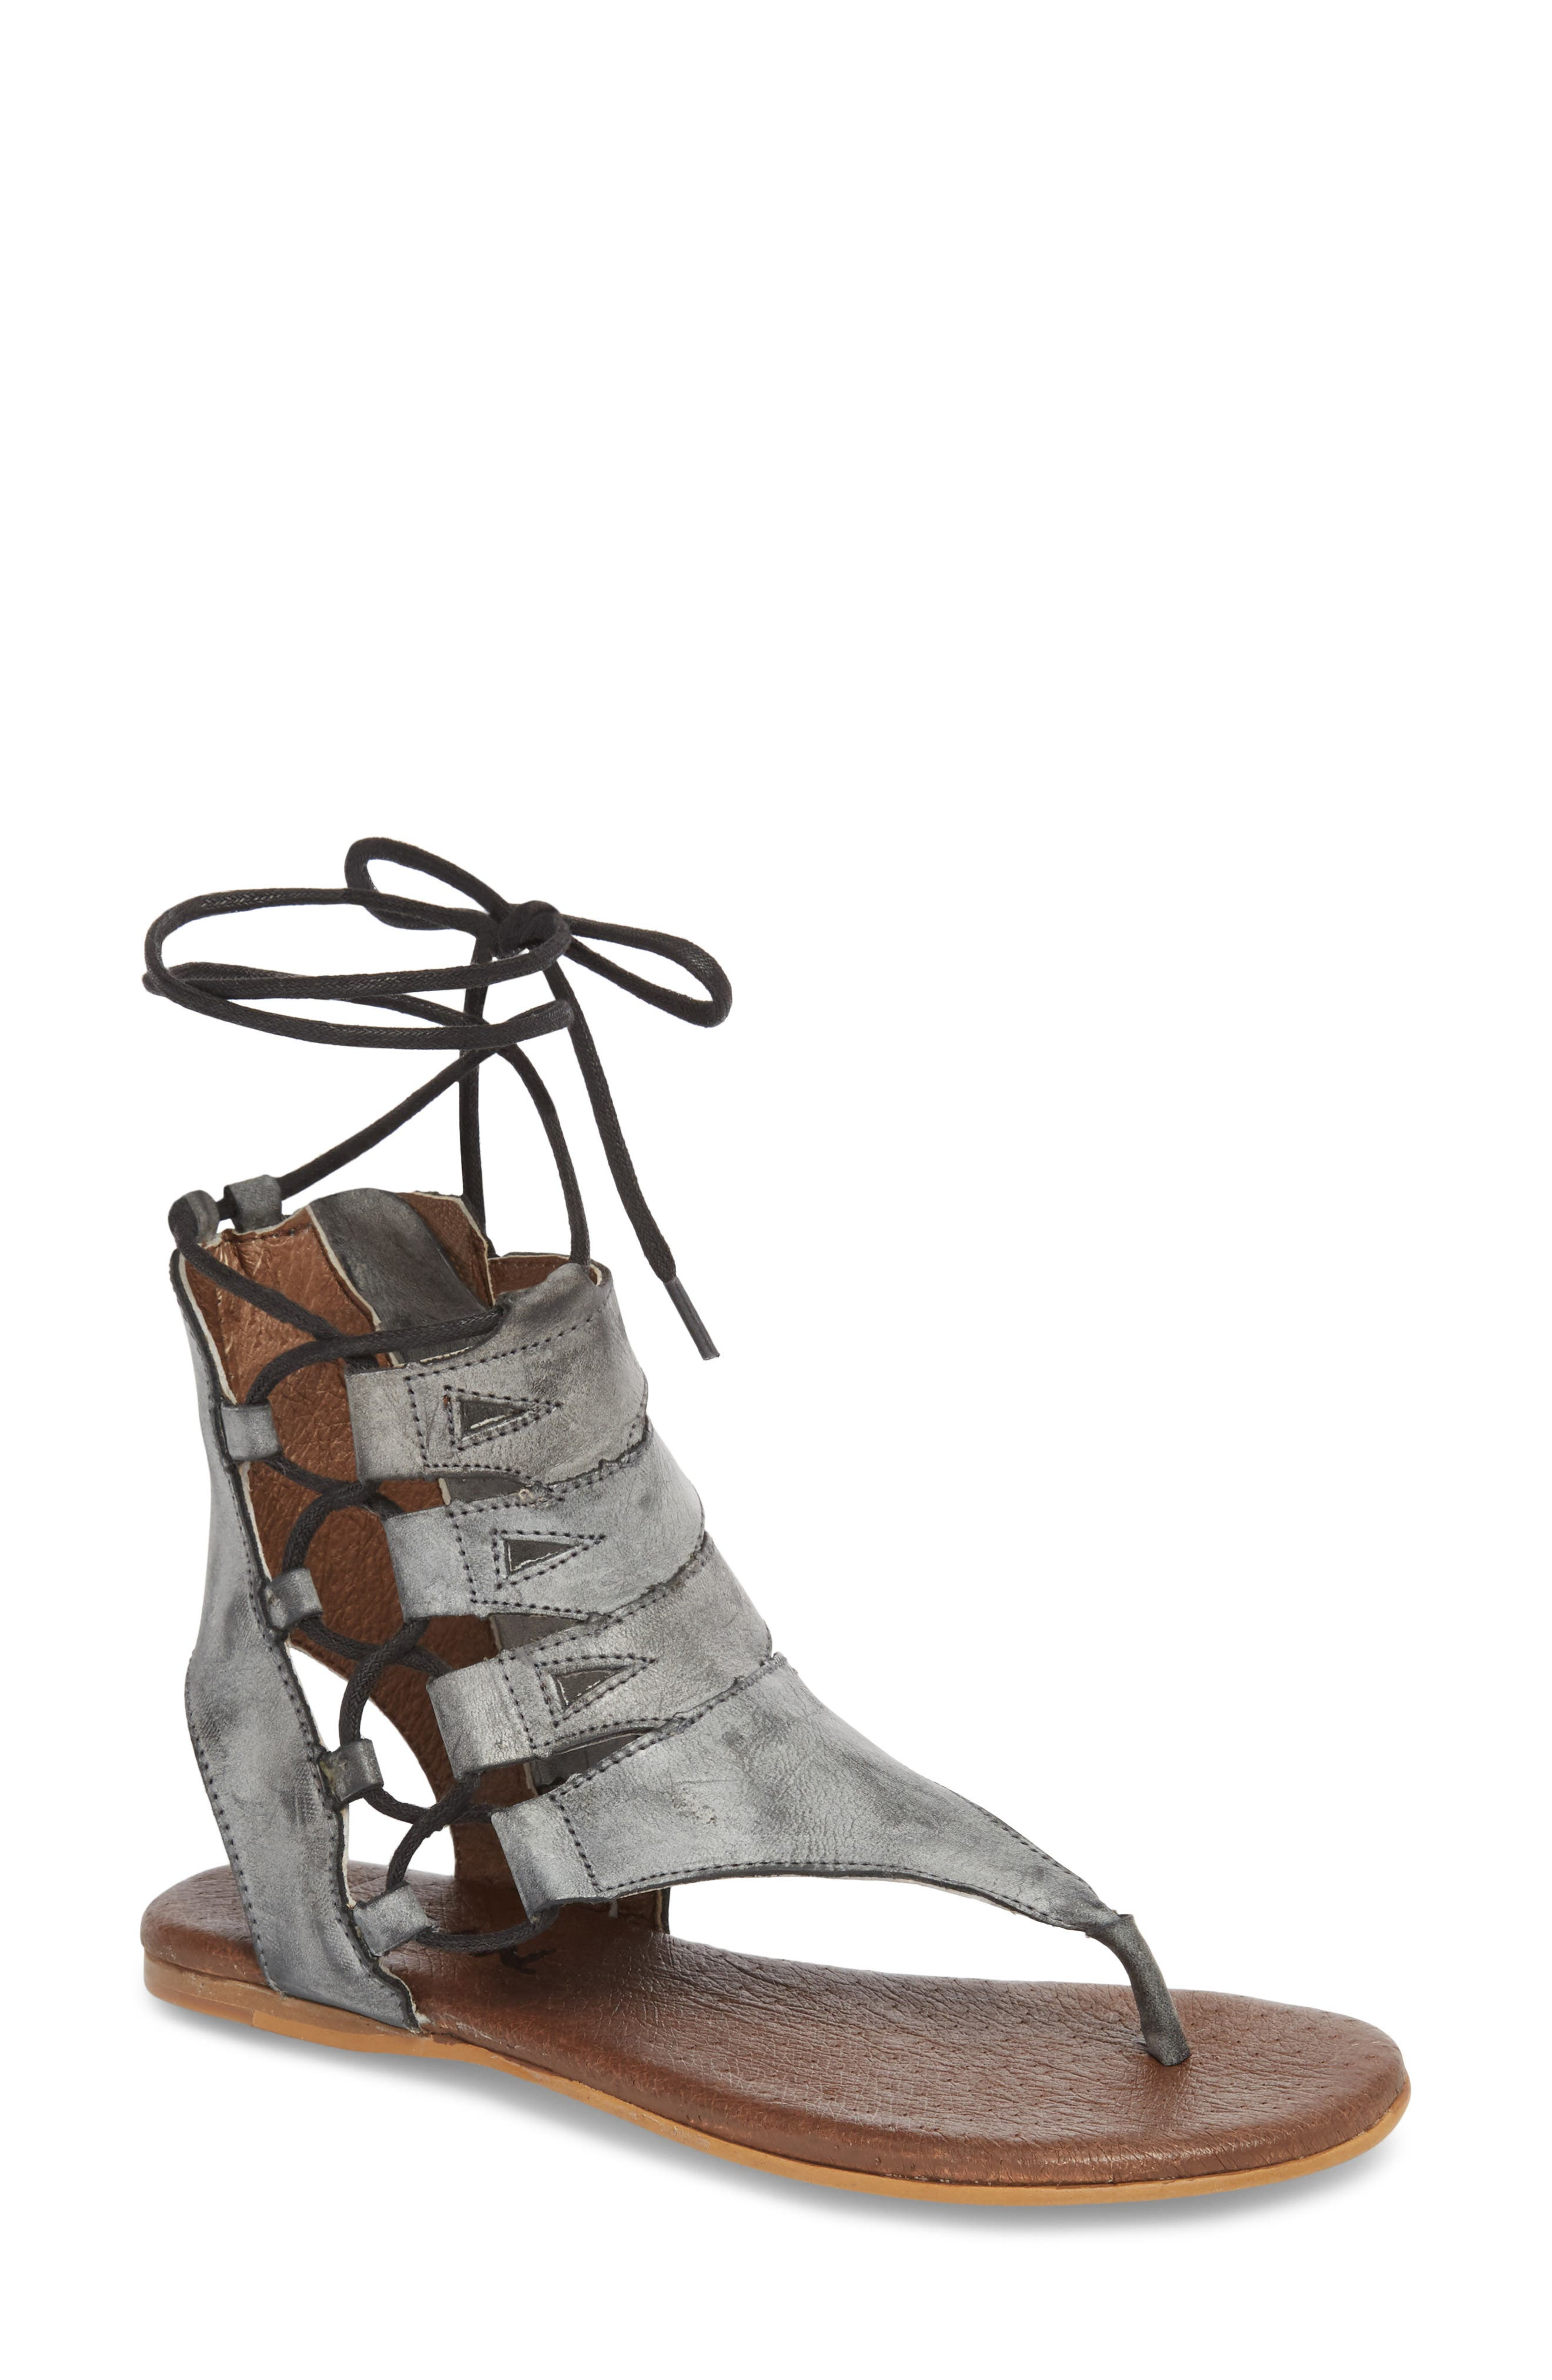 Rosalinda Tall Sandal,                             Main thumbnail 1, color,                             001